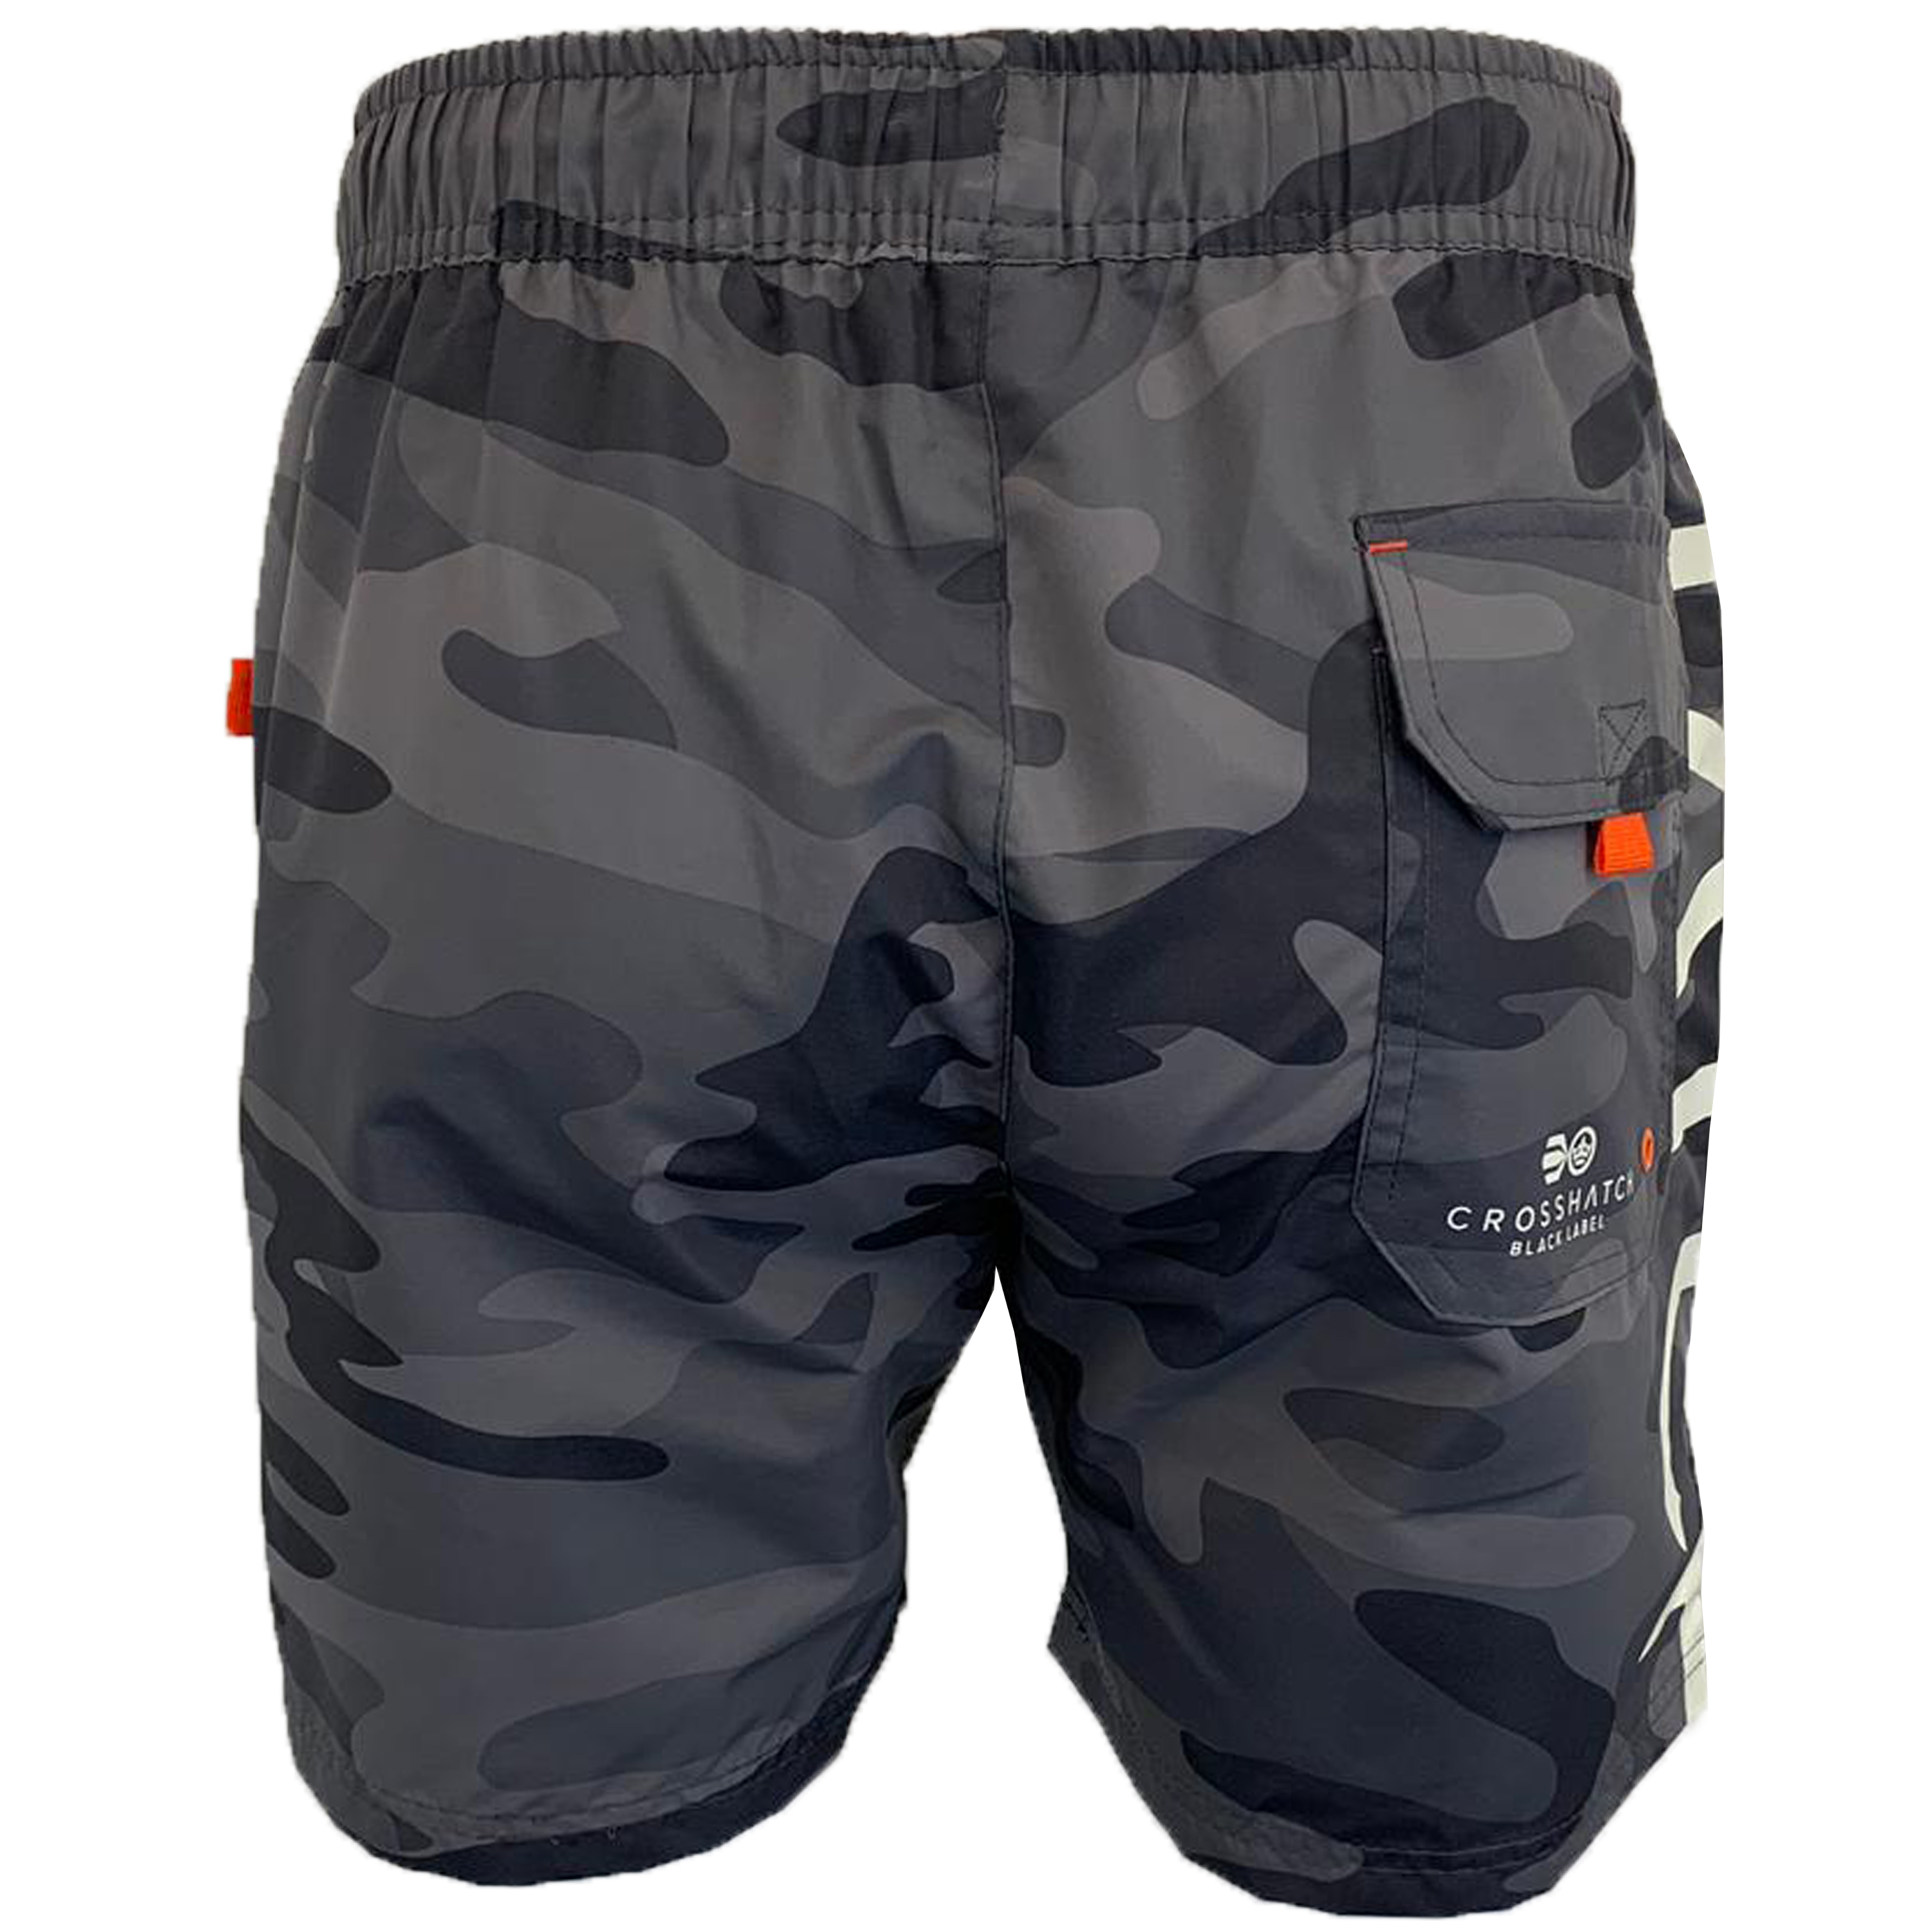 Mens-Camouflage-Swim-Shorts-Crosshatch-Army-Military-Knee-Length-Casual-Summer thumbnail 14